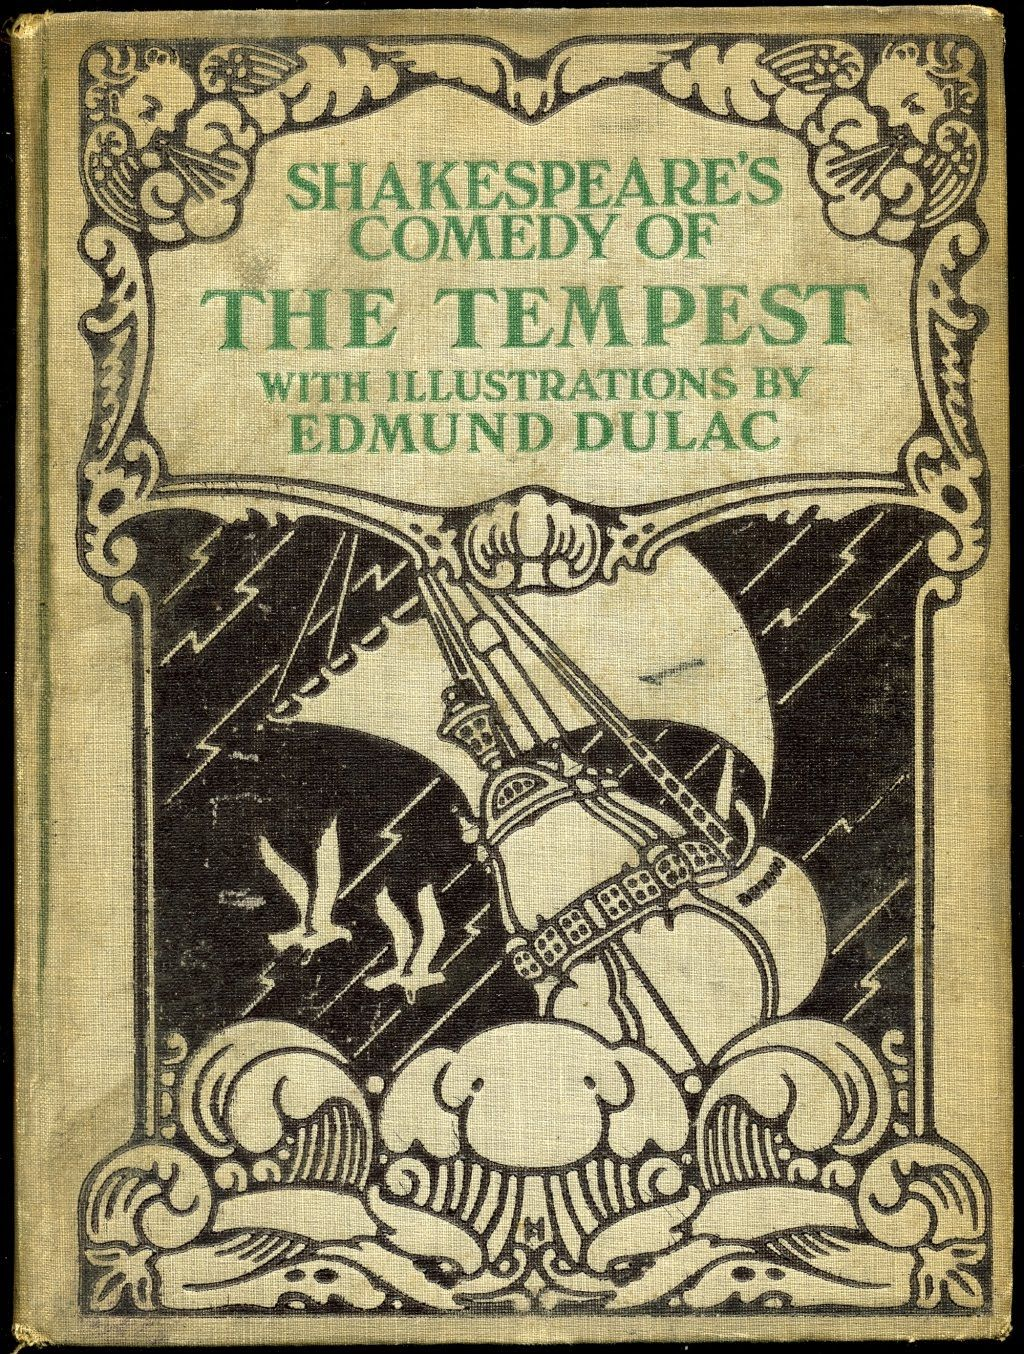 shakespeare s the tempest edmond dulac cloth edmund dulac  shakespeare s the tempest edmond dulac cloth edmund dulac 1882 1953 published by hodder